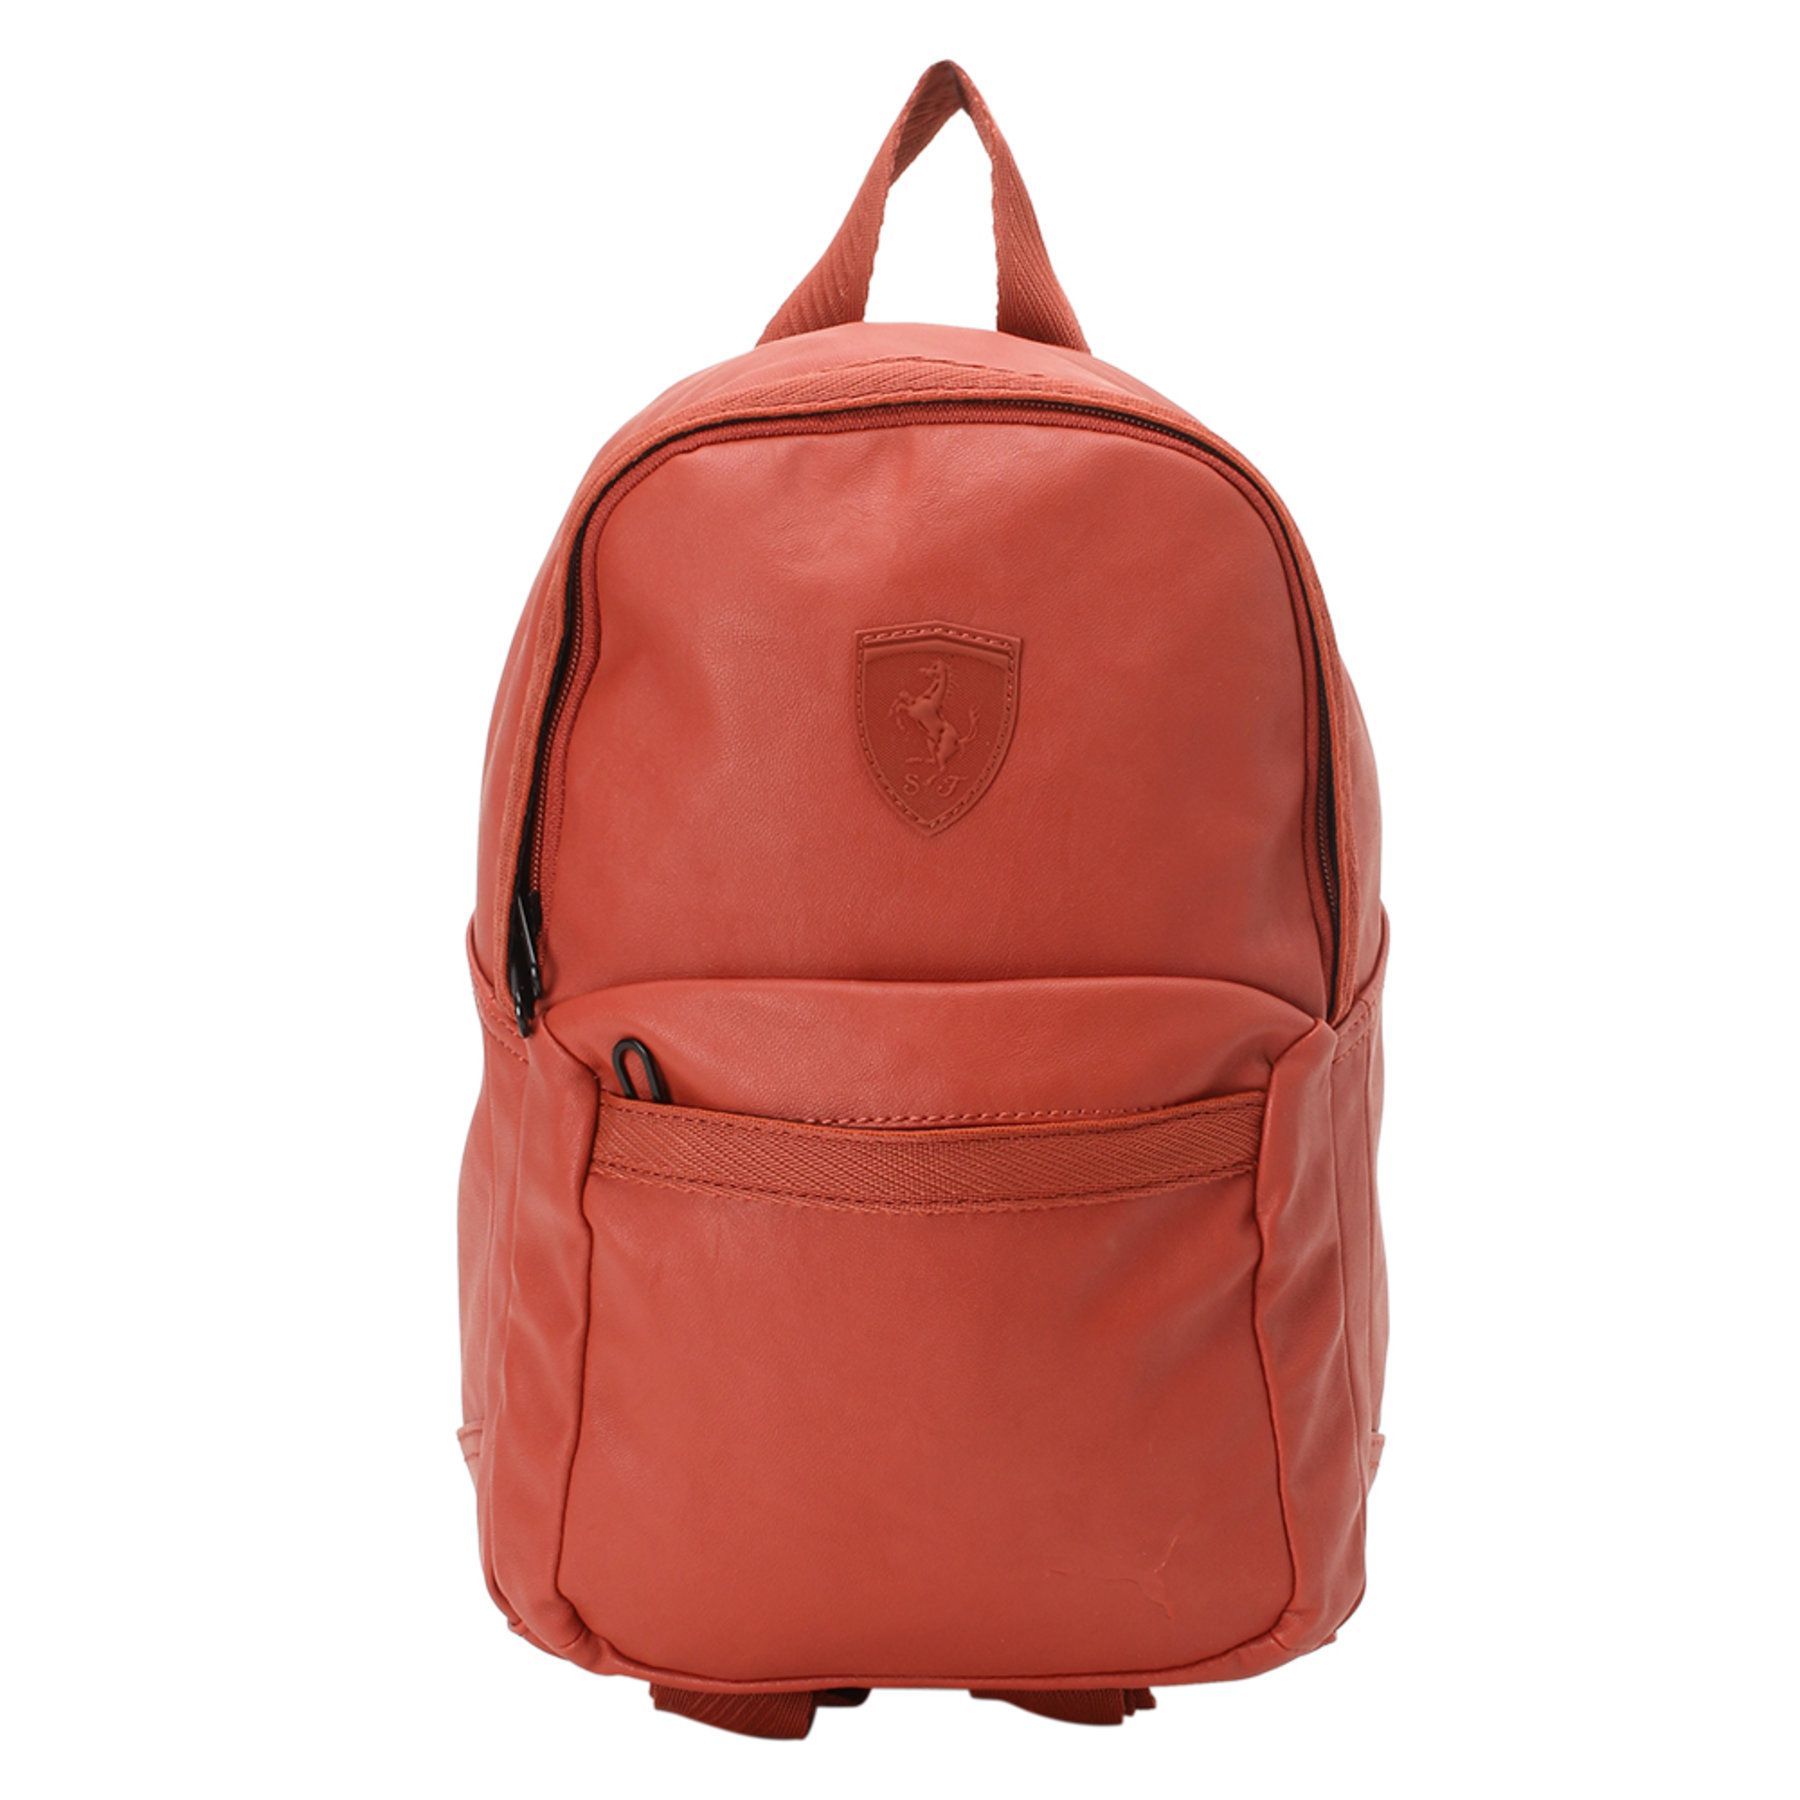 Puma Red SF LS Zainetto Women Backpack - Buy Puma Red SF LS Zainetto Women  Backpack Online at Low Price - Snapdeal 3c5854b202